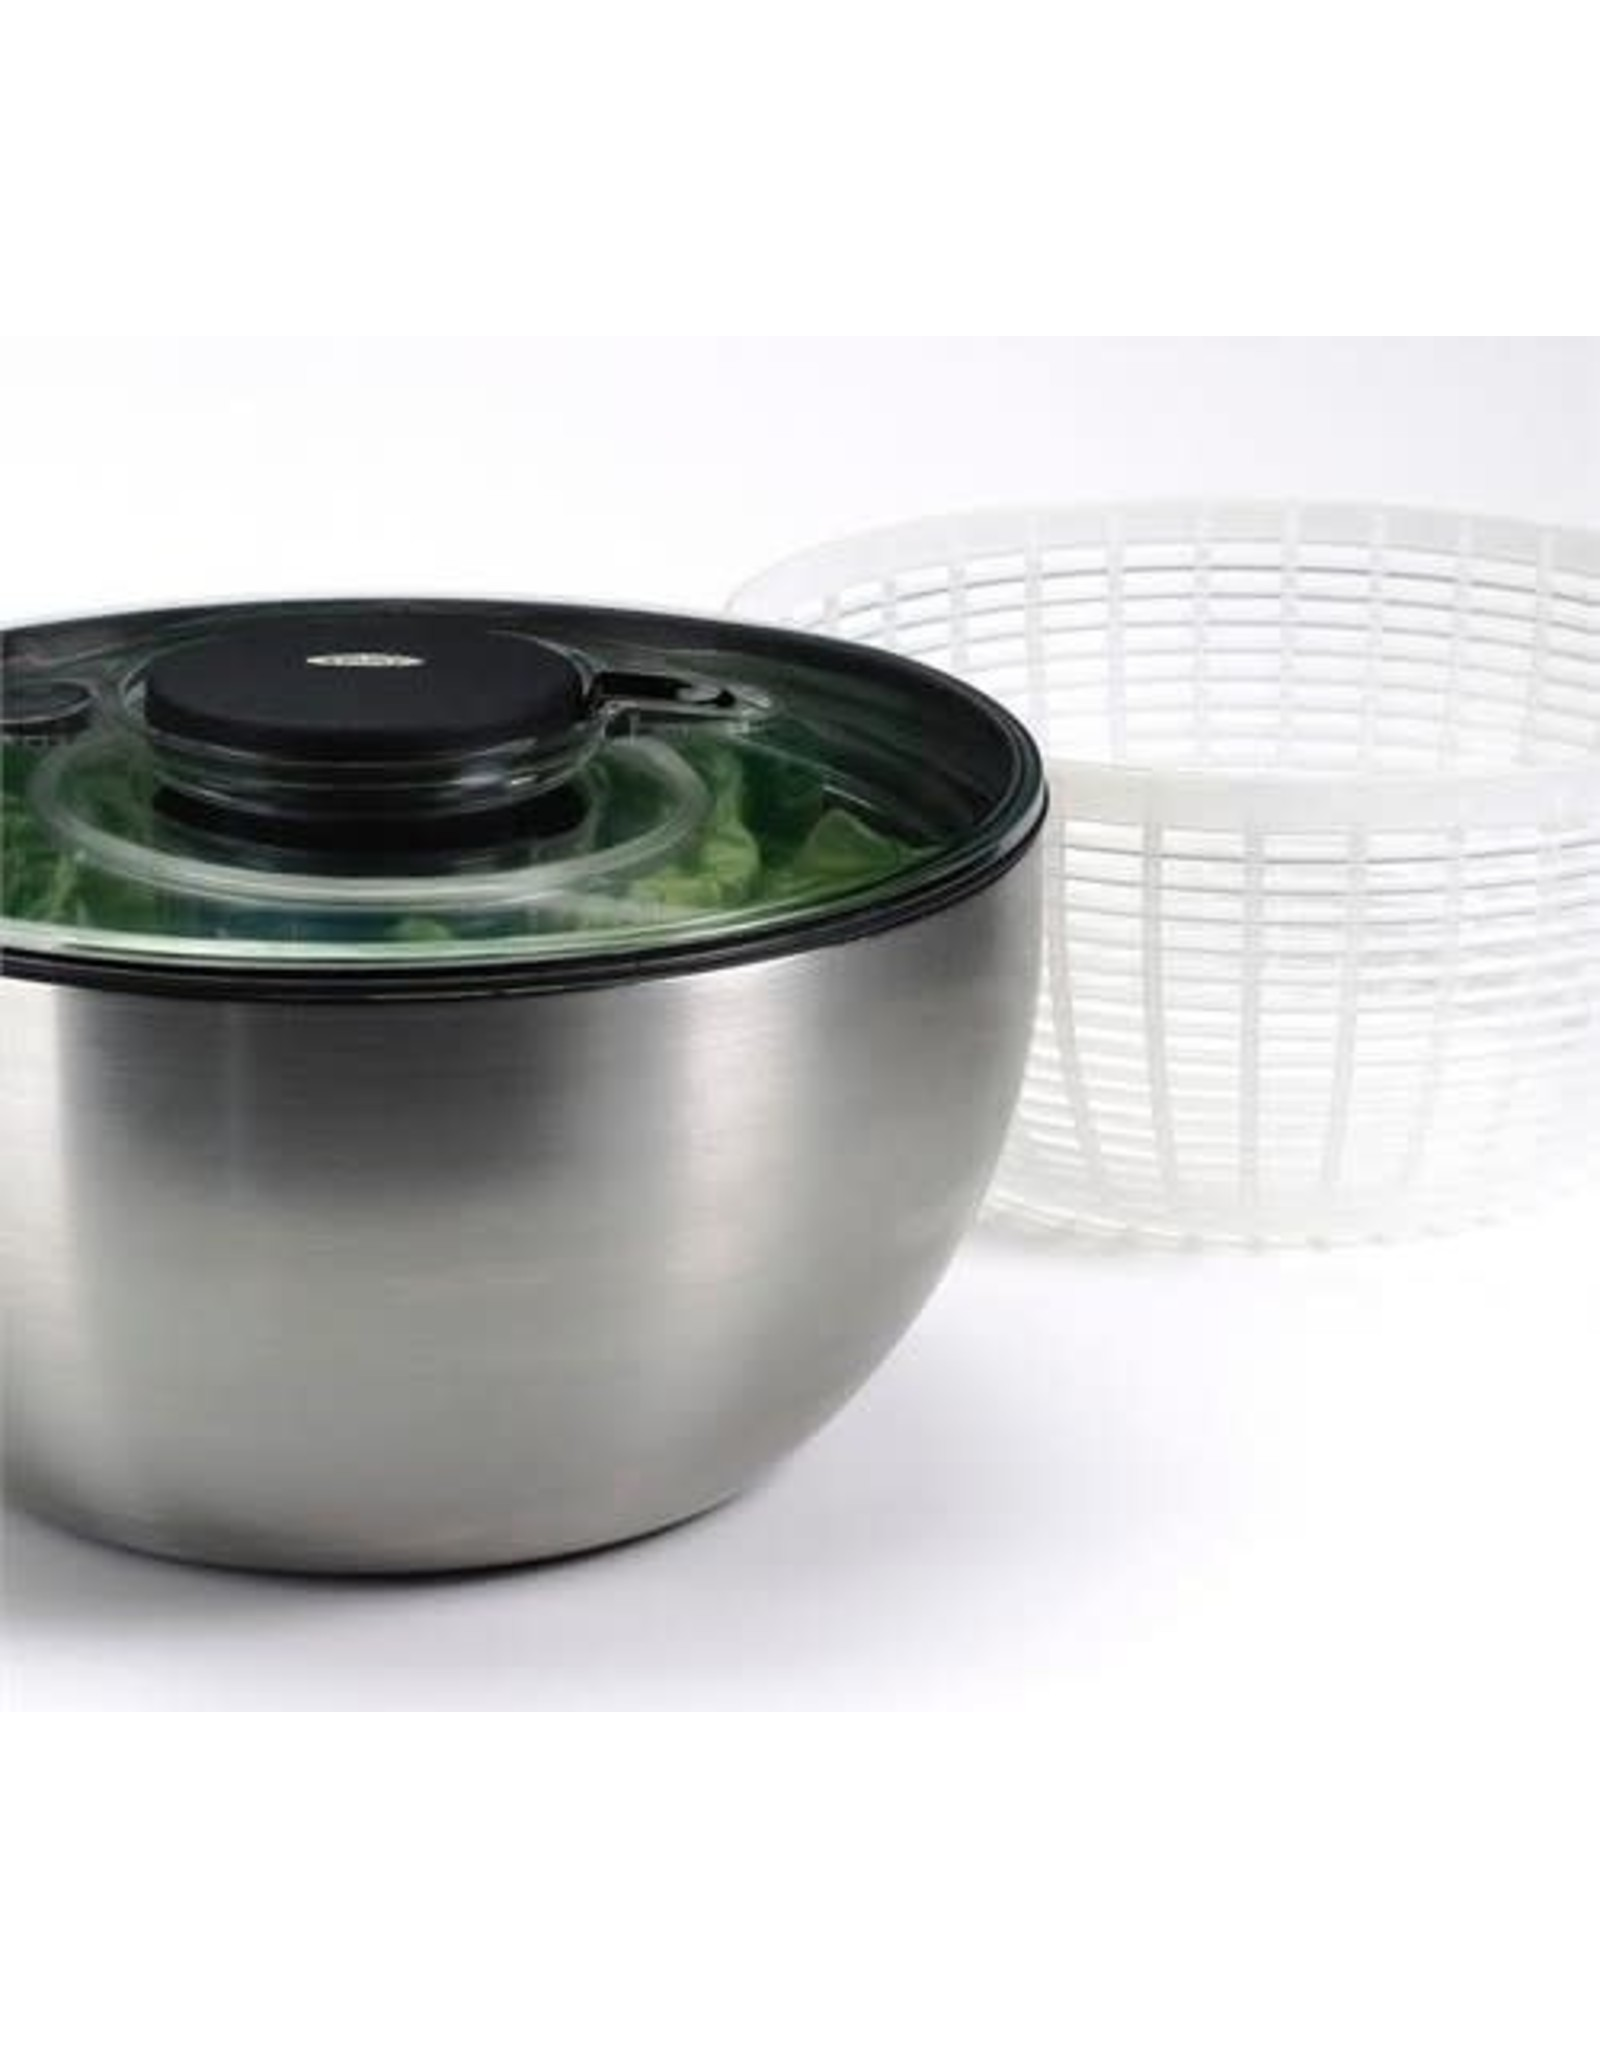 OXO OXO STEEL SALAD SPINNER